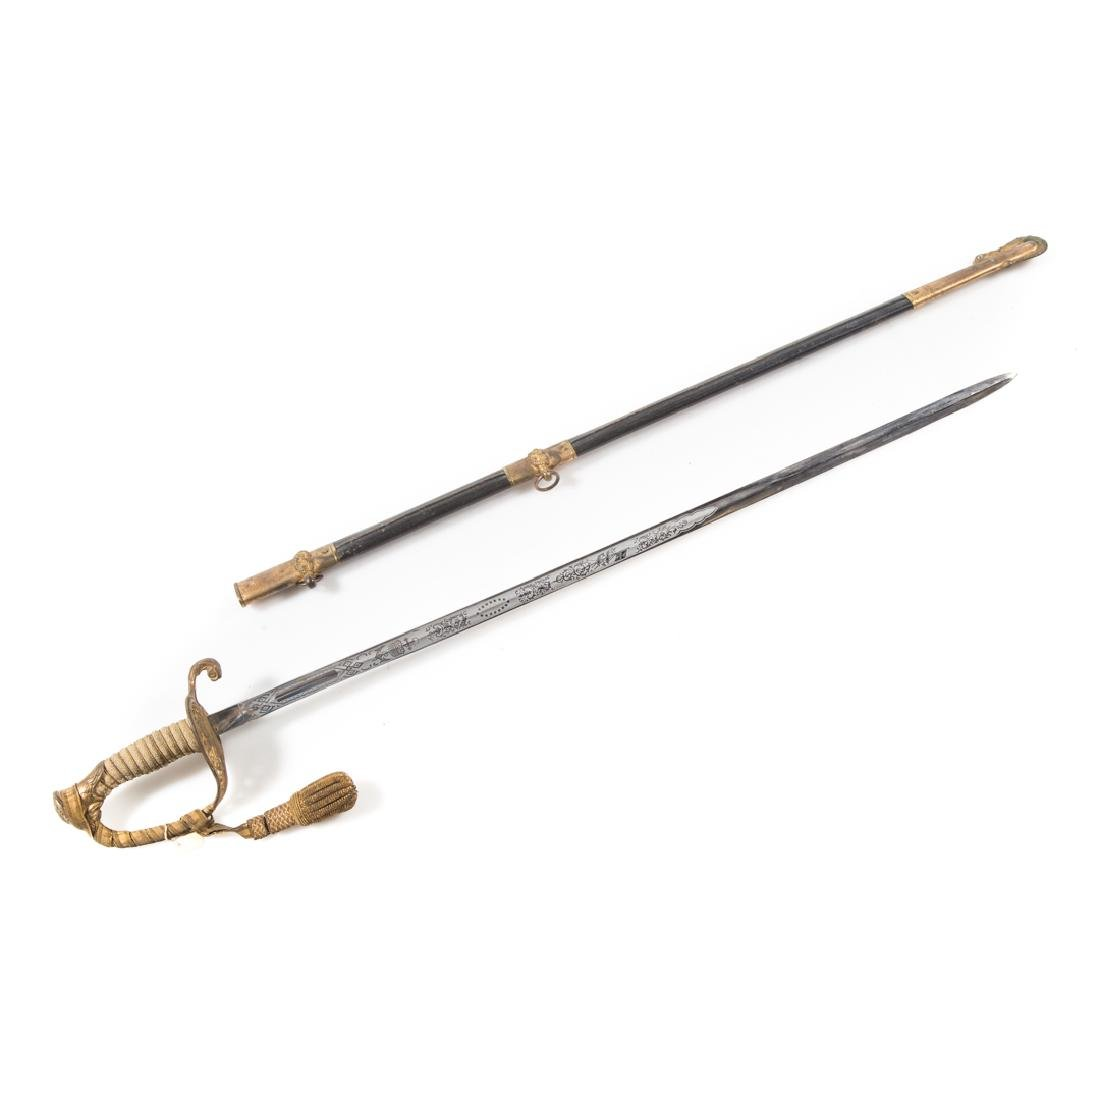 Navy officer's dress sword